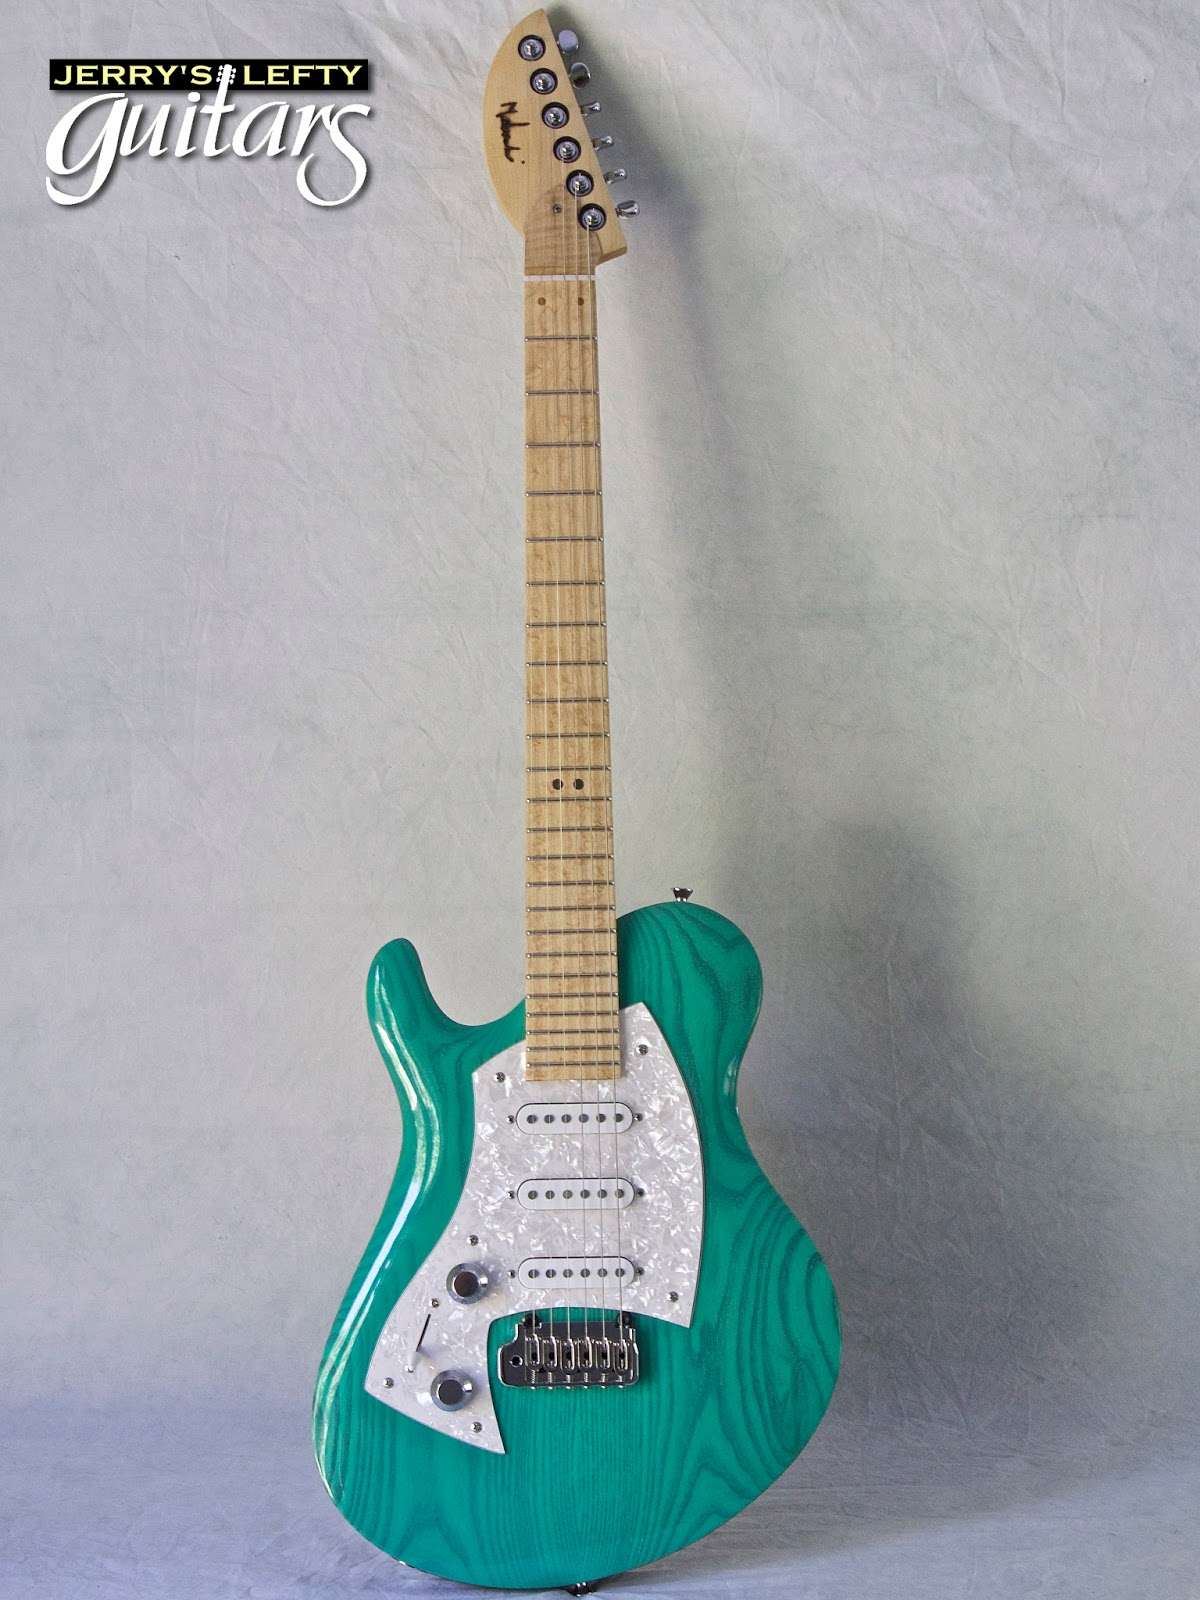 jerry 39 s lefty guitars newest guitar arrivals updated weekly malinoski rodeo 233 surf green. Black Bedroom Furniture Sets. Home Design Ideas